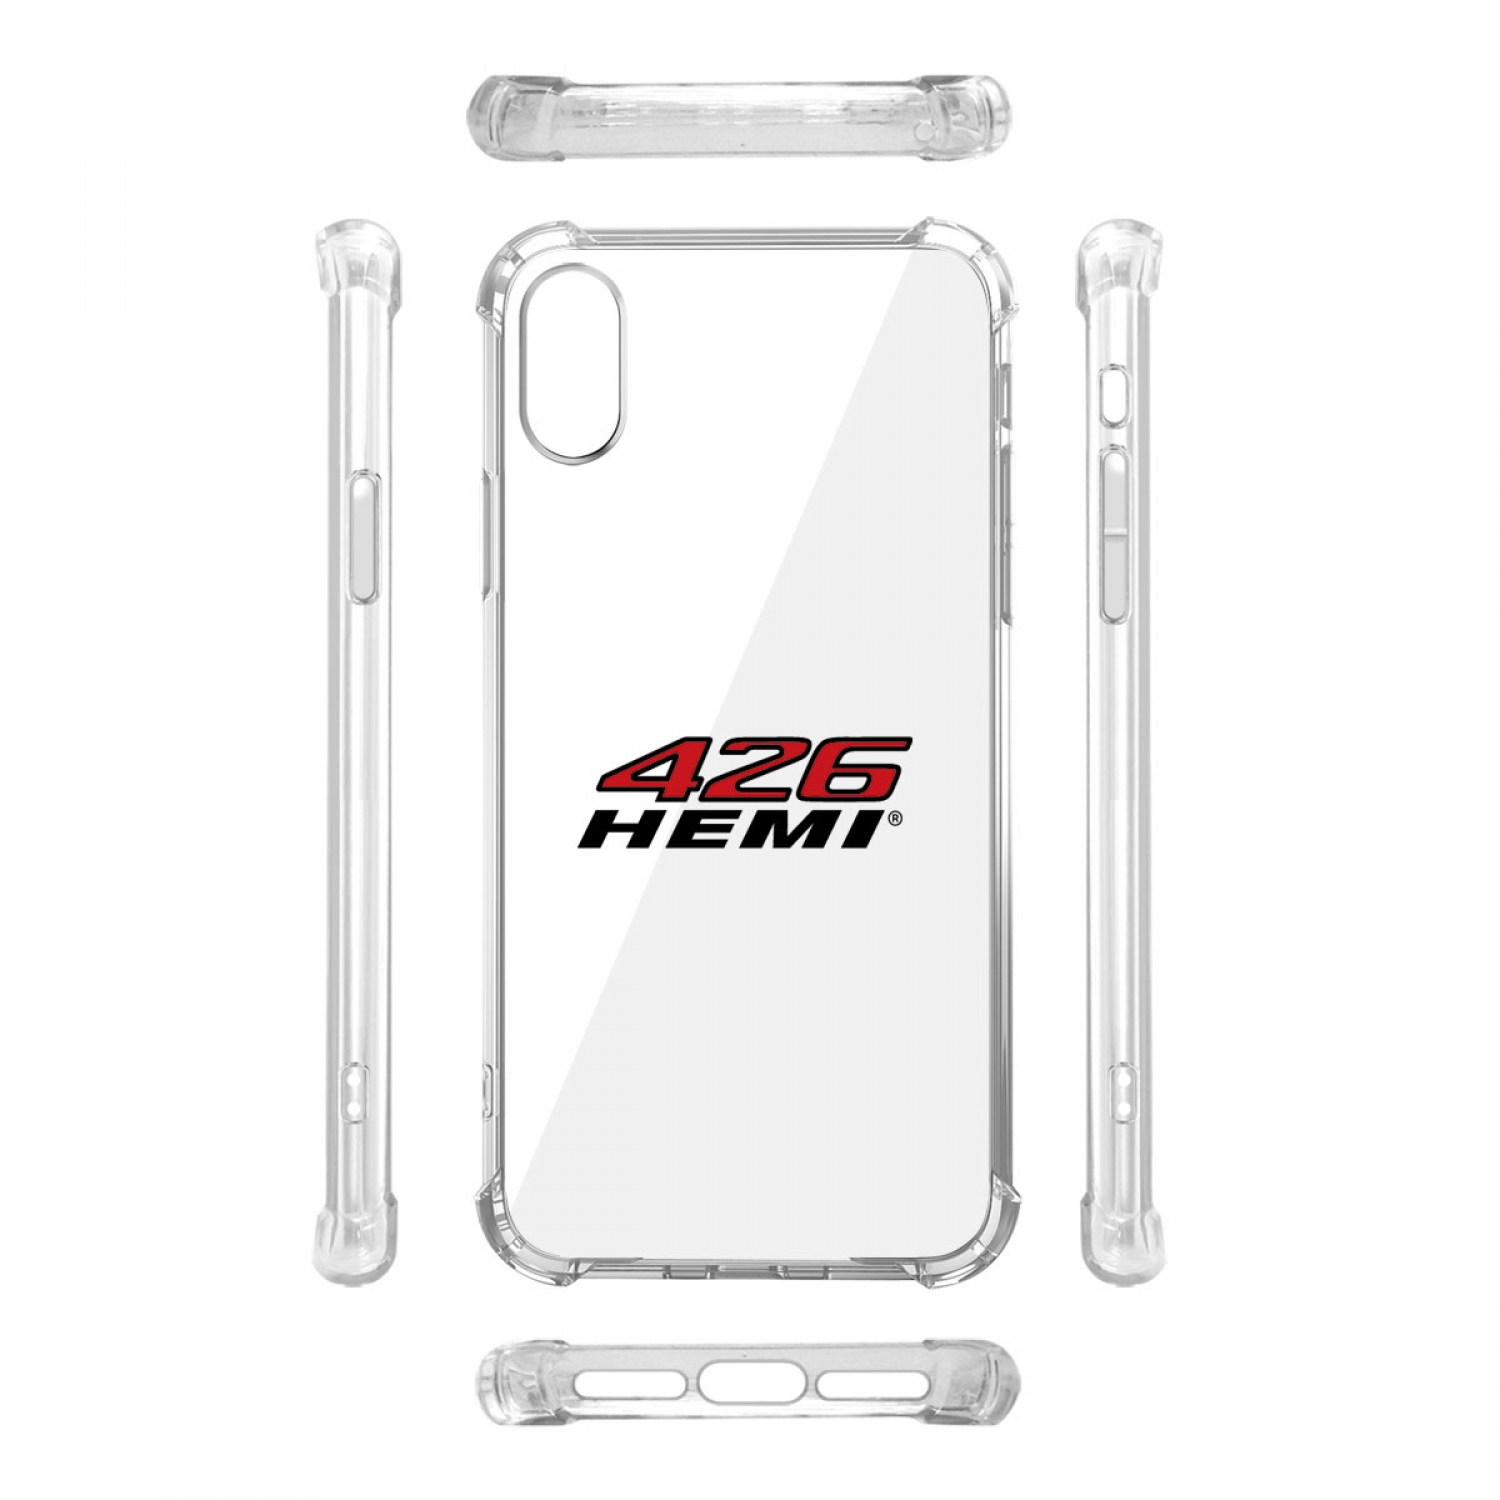 HEMI 426 HP iPhone X Clear TPU Shockproof Cell Phone Case